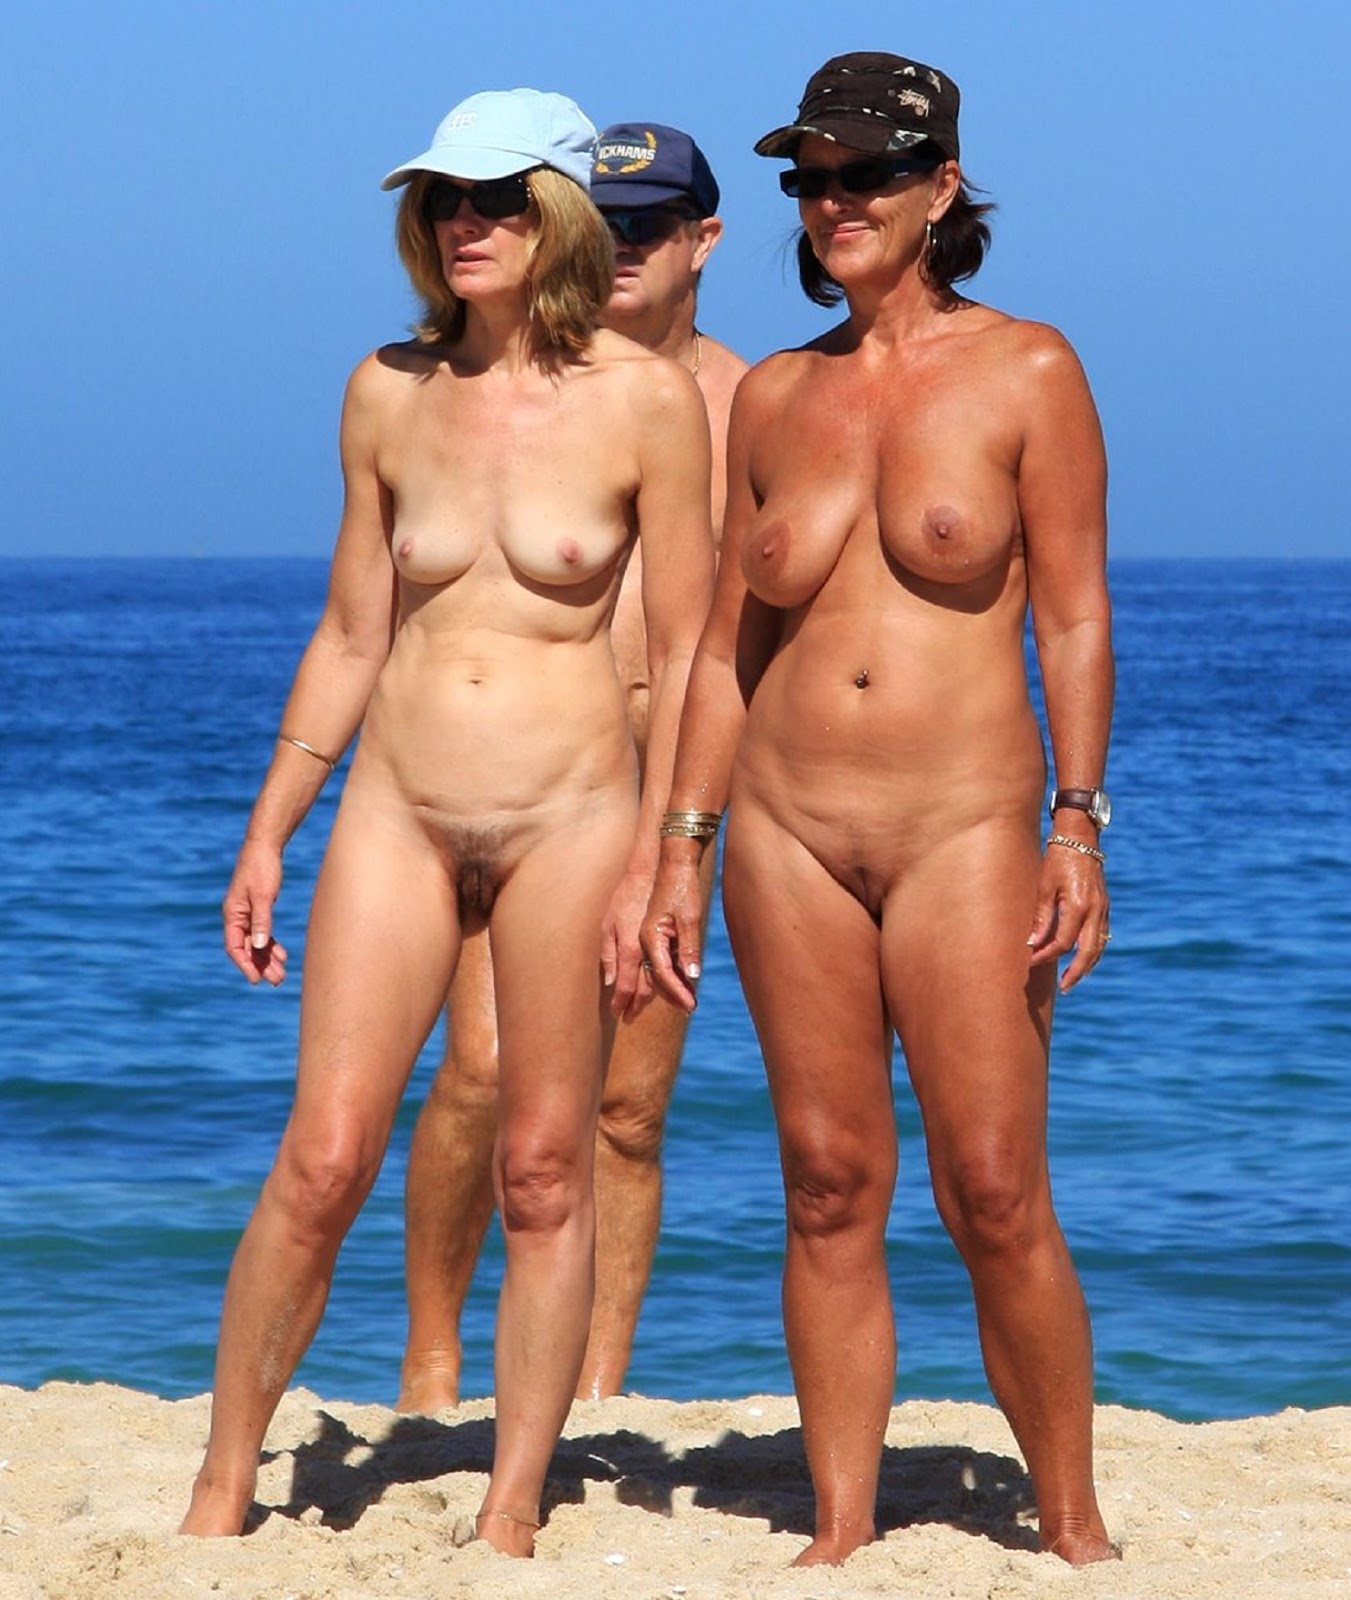 Public Nudity Project Nude Beach Olympics 2009 -7227